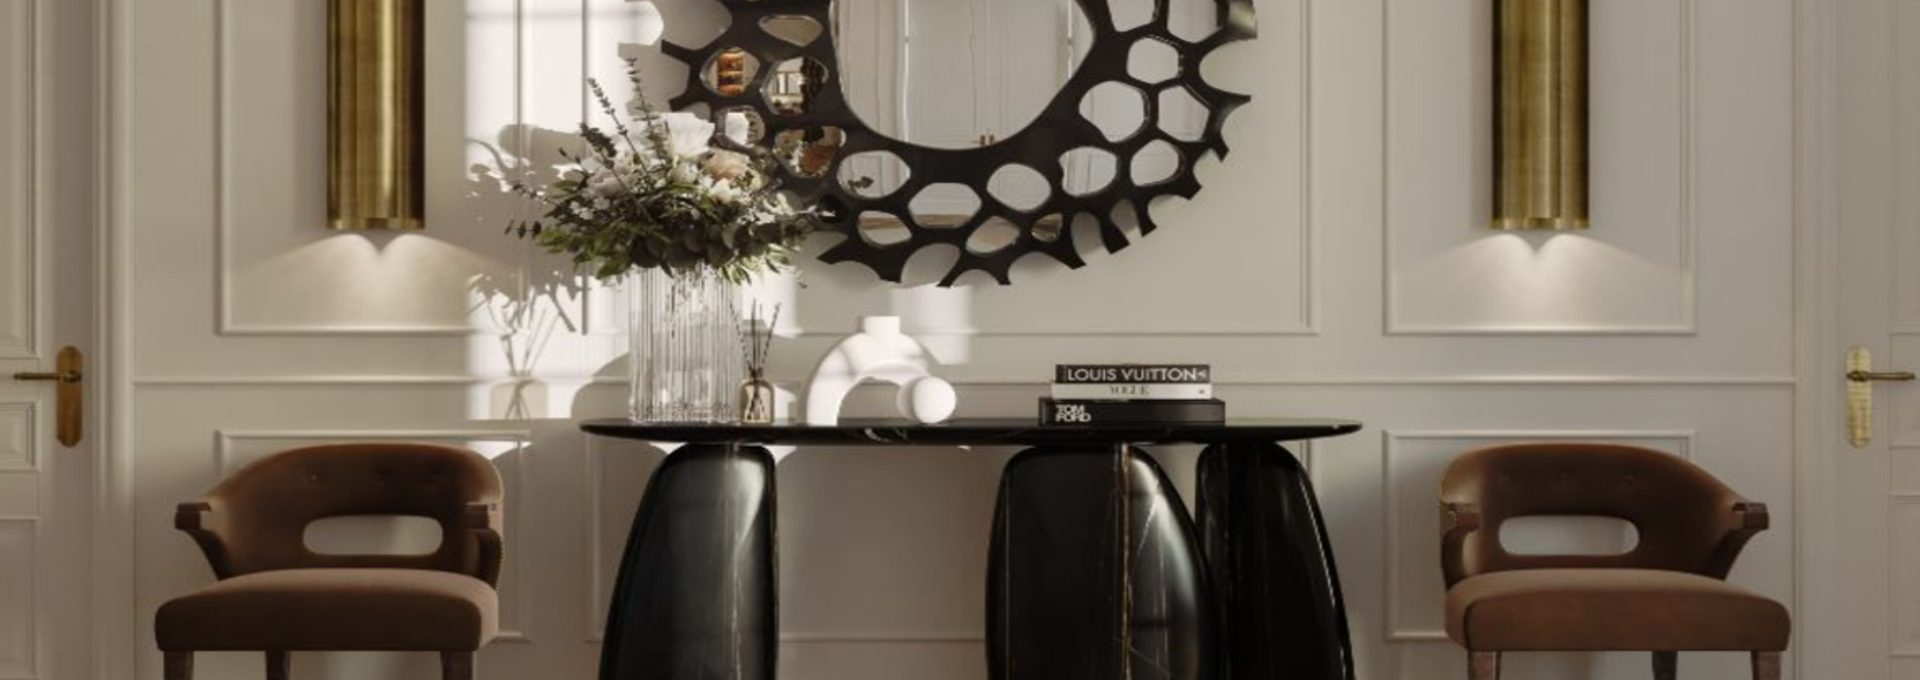 Summer Trends 2021, Fresh and Modern Decor to Keep Your Home Cool